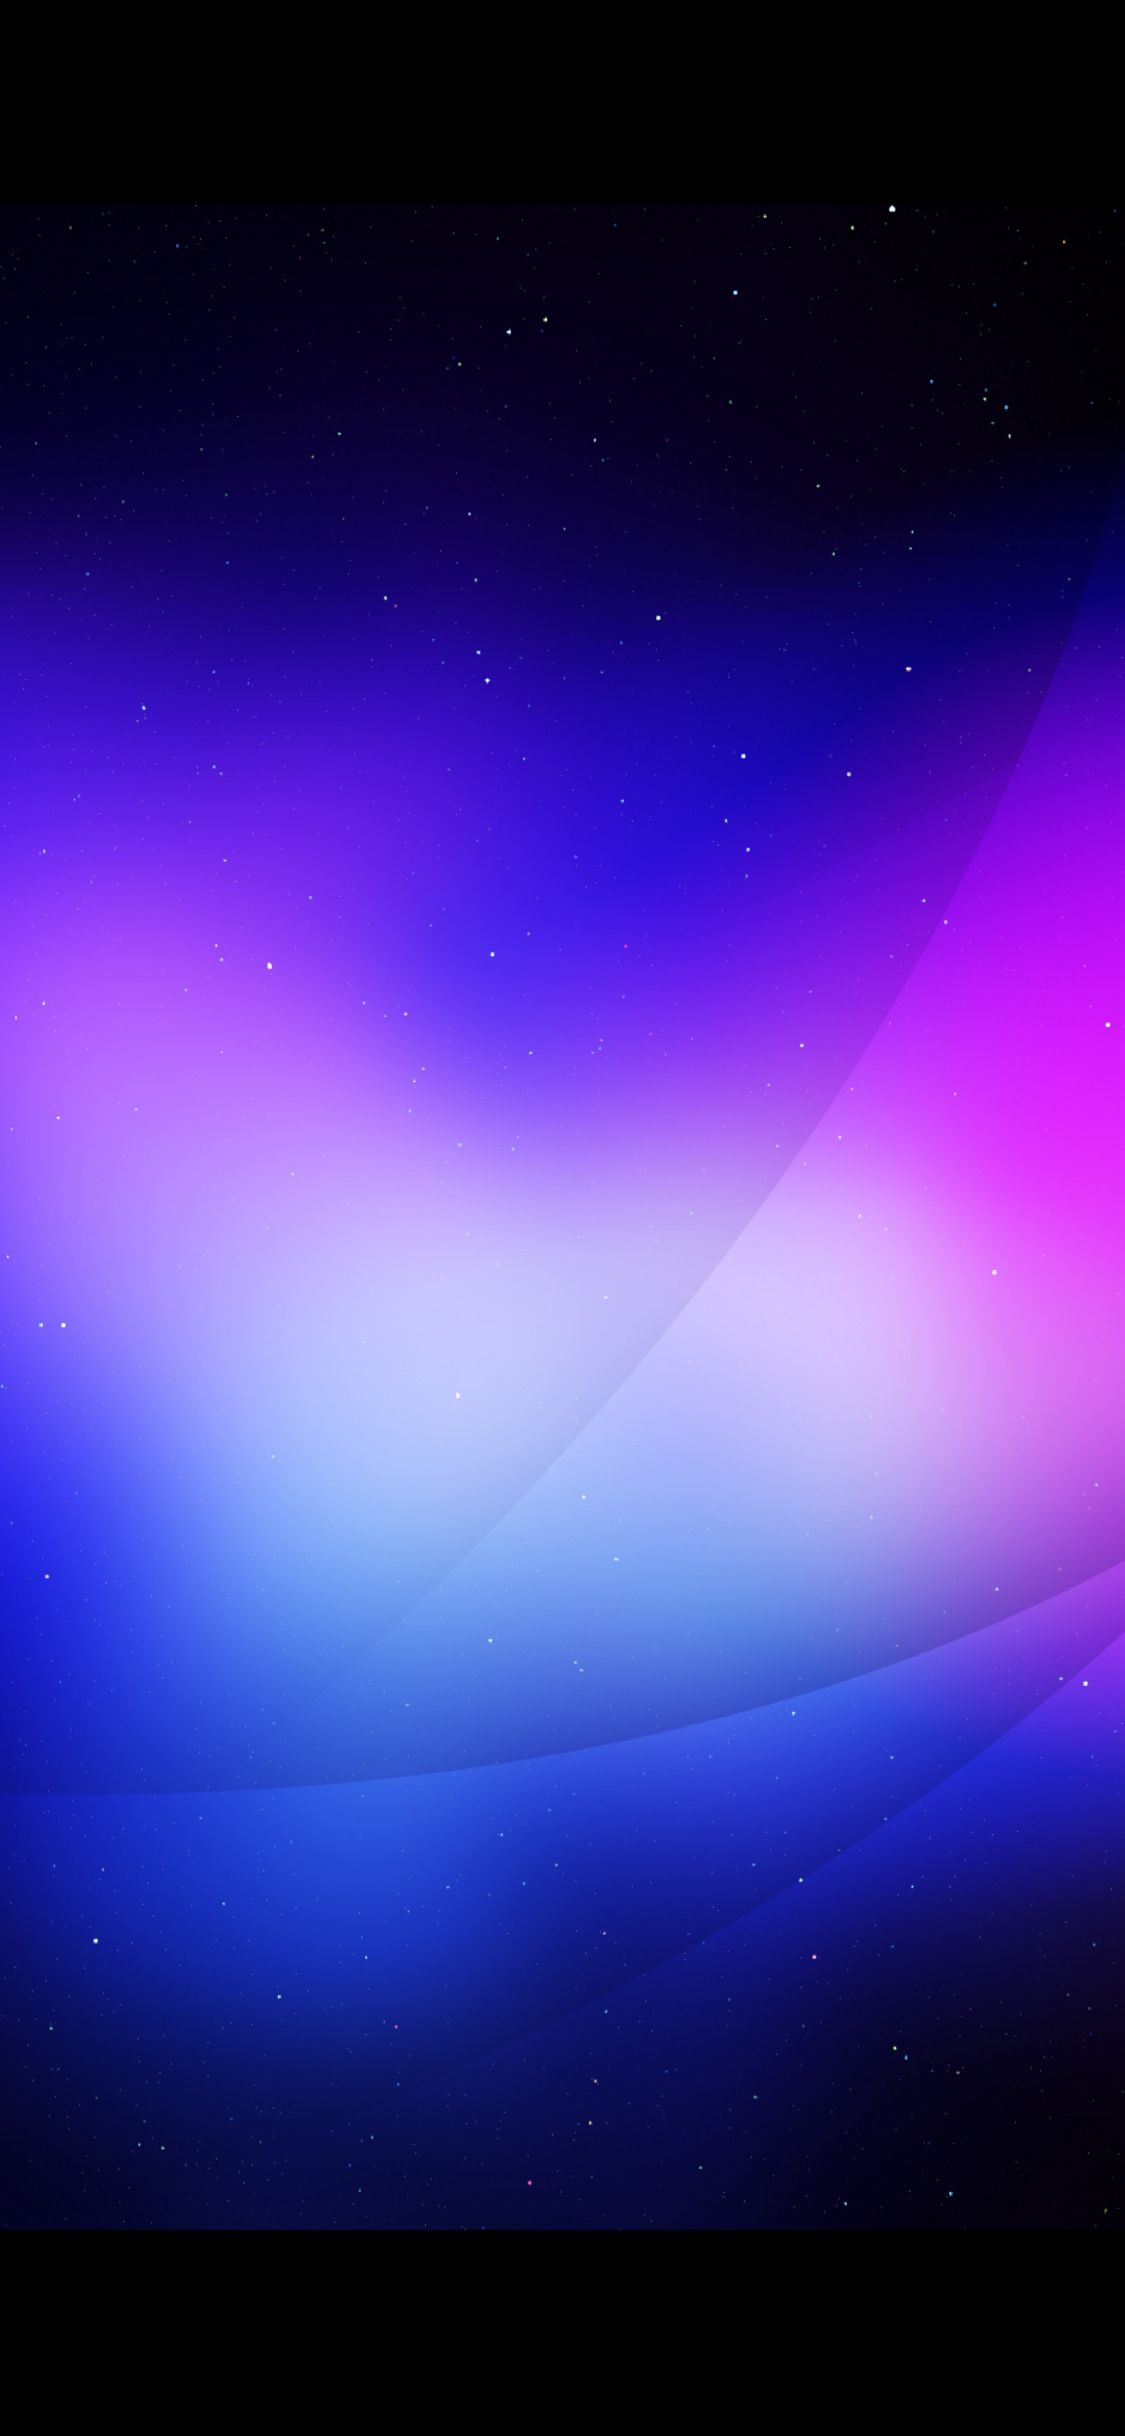 A Starry Night With Blue And Purple Best Iphone Wallpapers Graphic Wallpaper Iphone Wallpaper